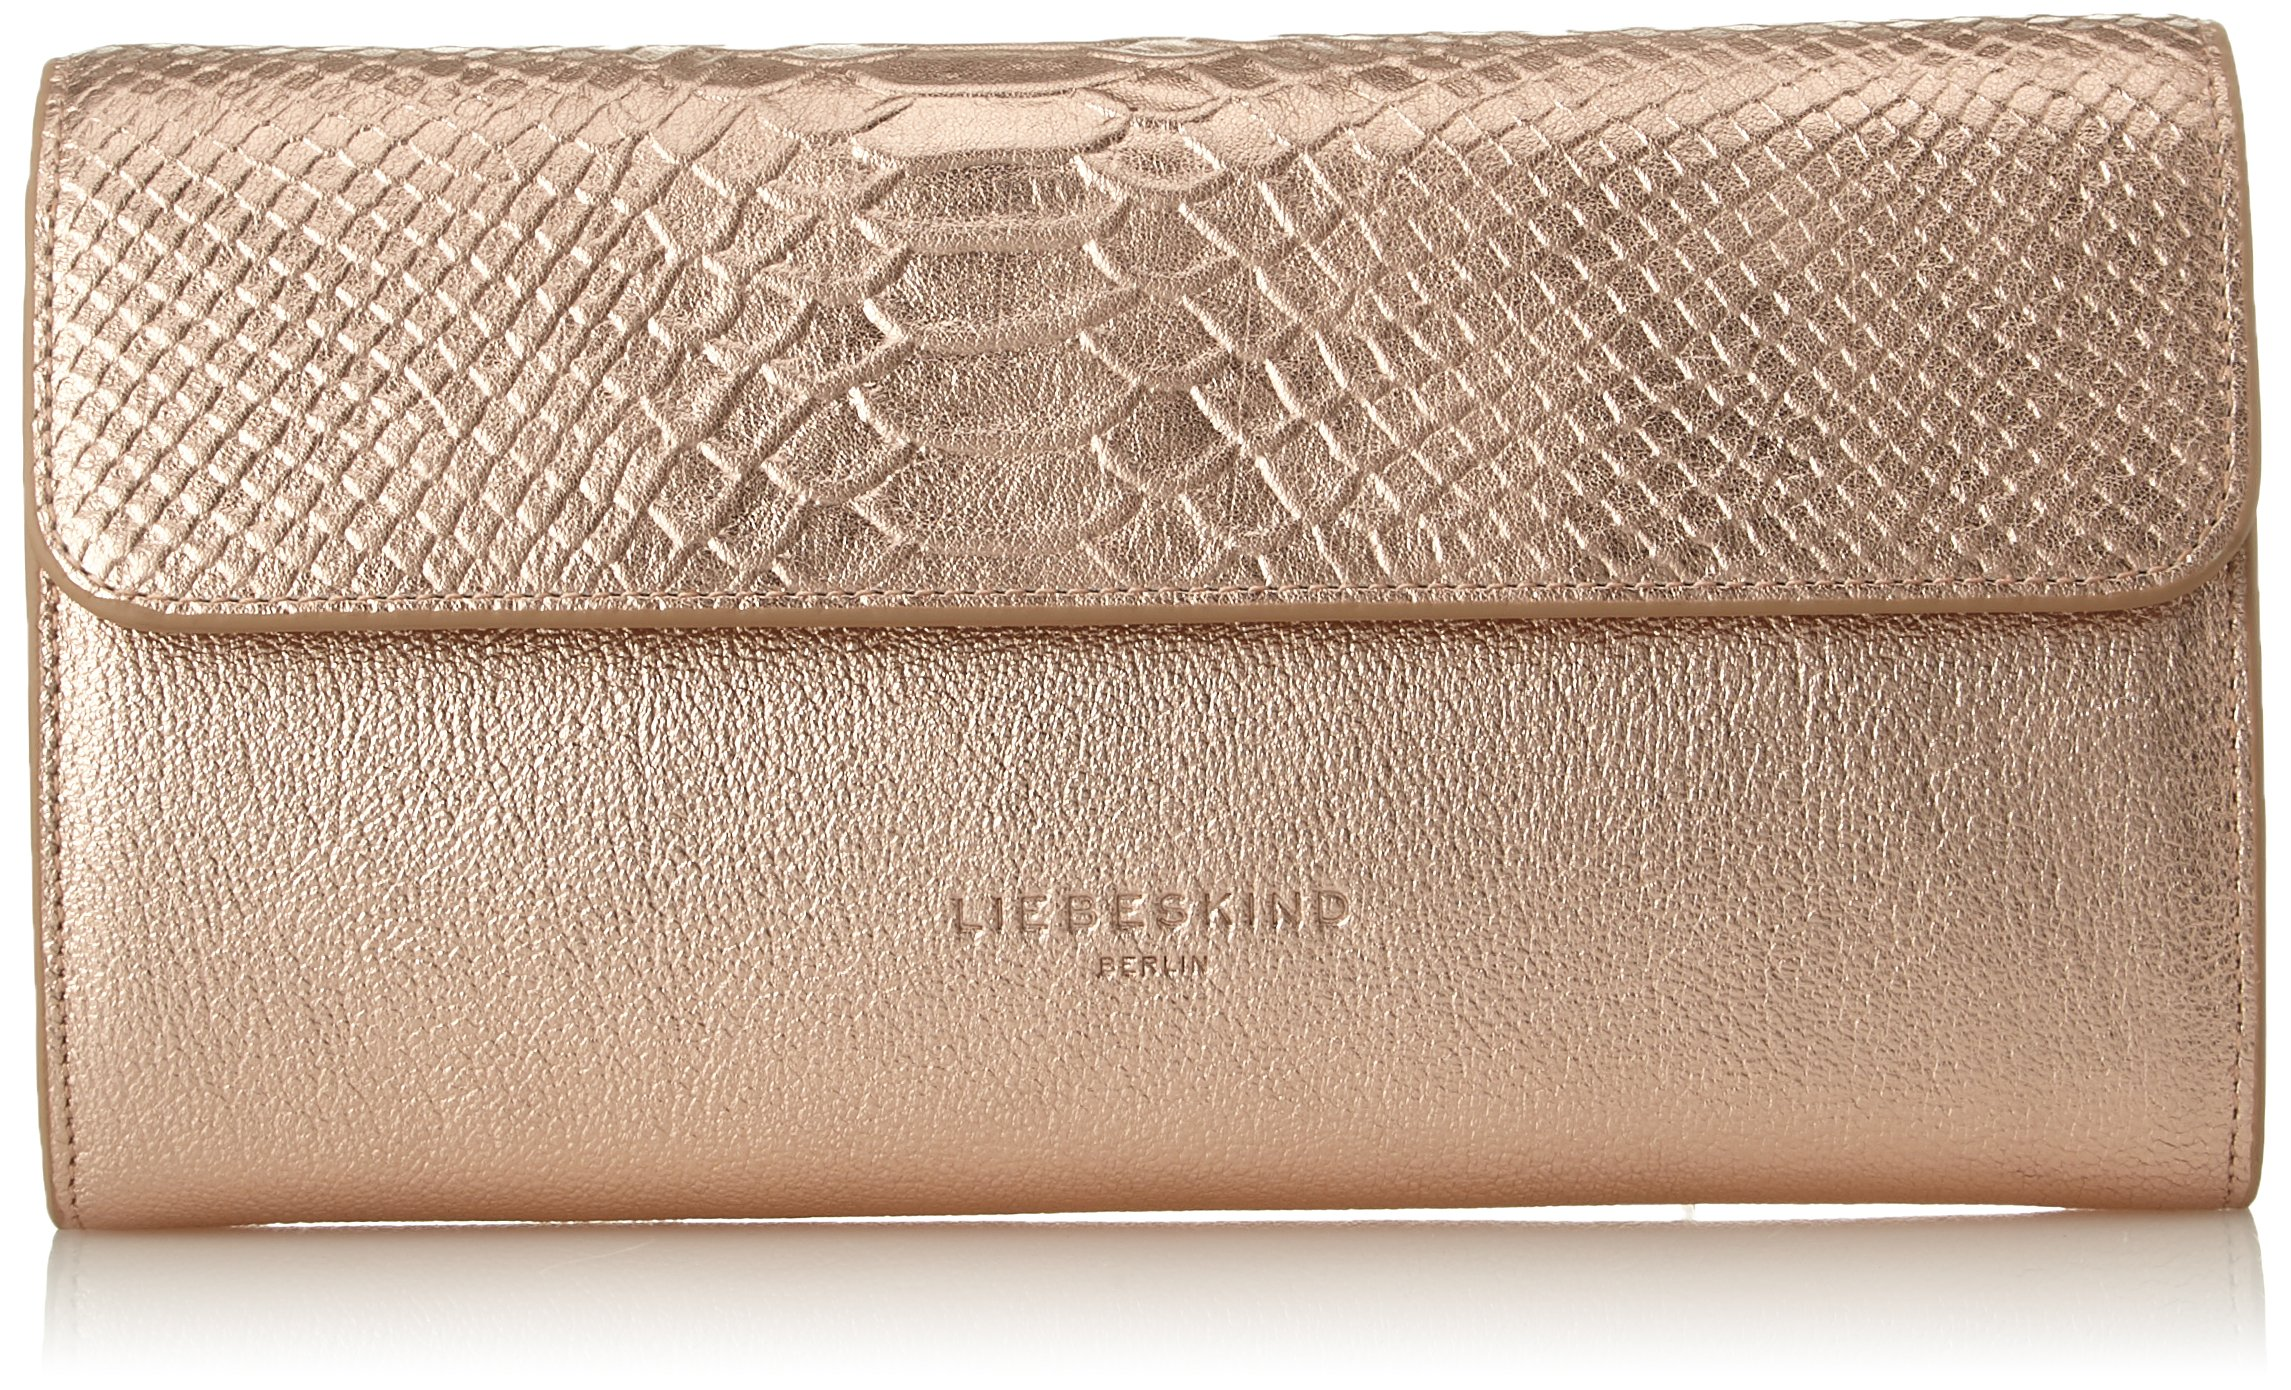 Liebeskind Berlin Women's Mariaf8 Metallic Leather Chain Crossbody, Rose Gold